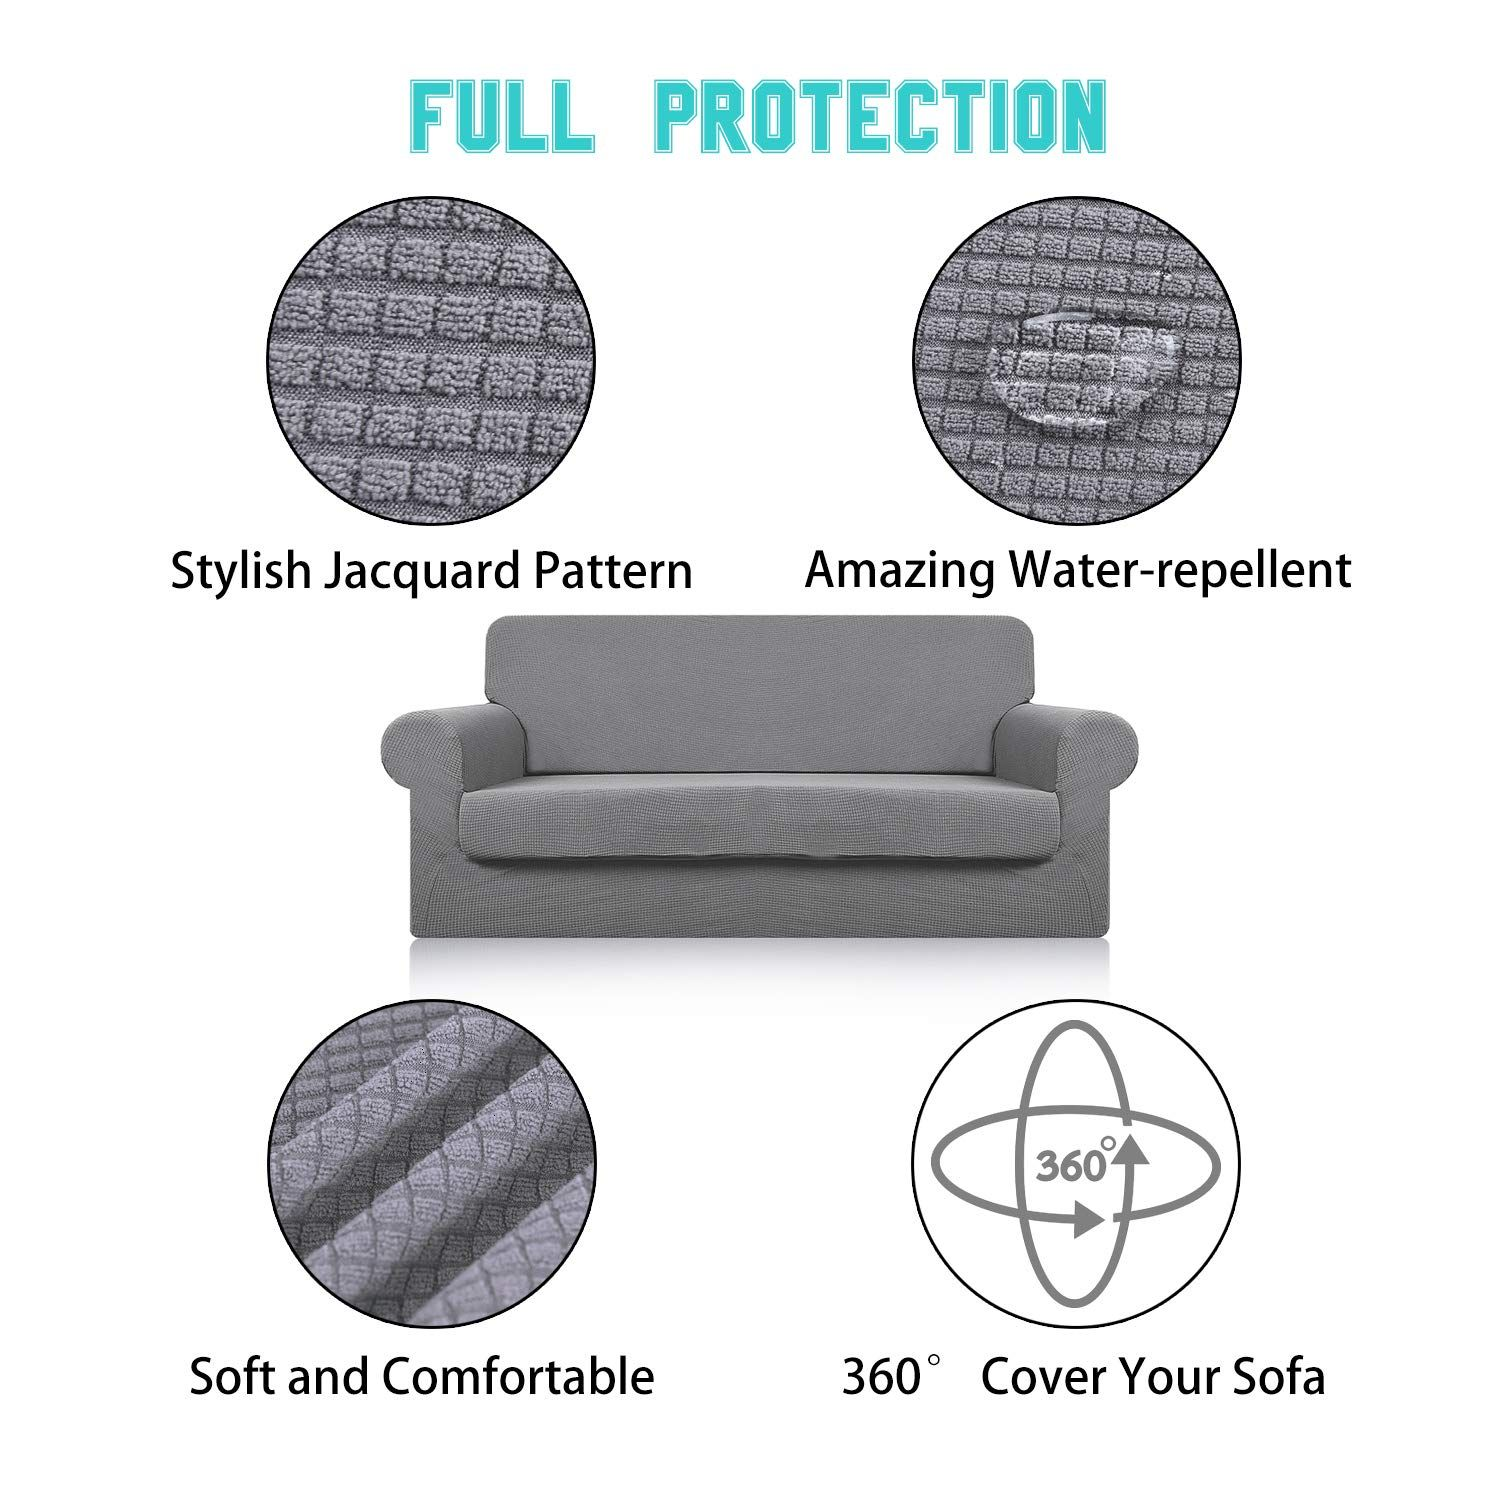 Sofa Cover With Separate Seat Cushion Cover2 Pieces Set Water Repellentknitted Jacquardhigh Stretch Living Slip Covers Couch Sofa Covers Couches Living Room